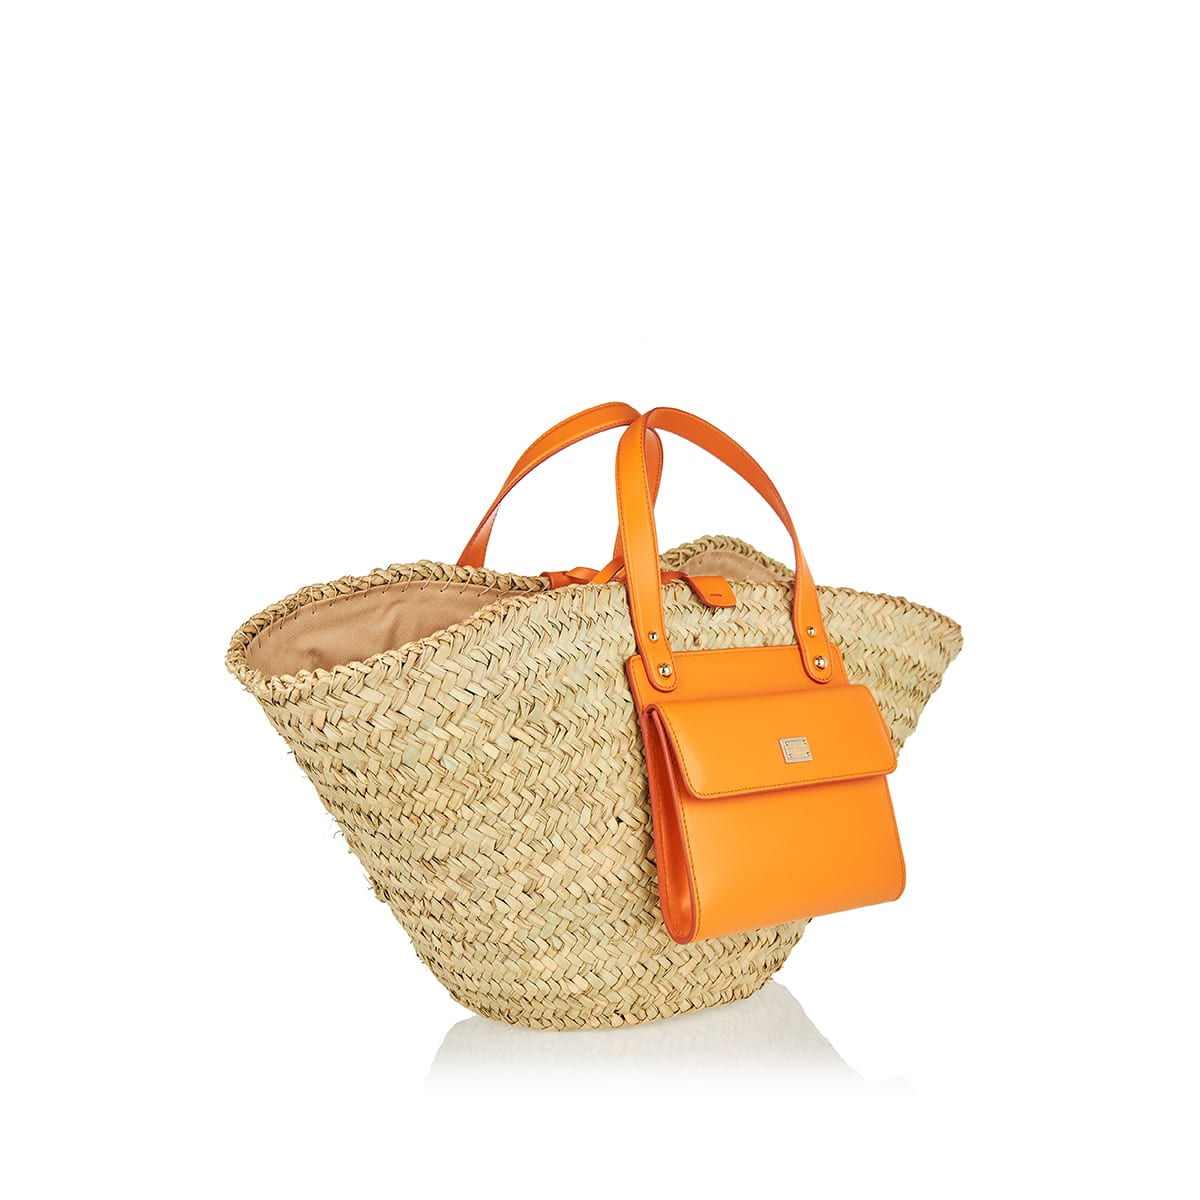 Kendra straw and leather basket bag